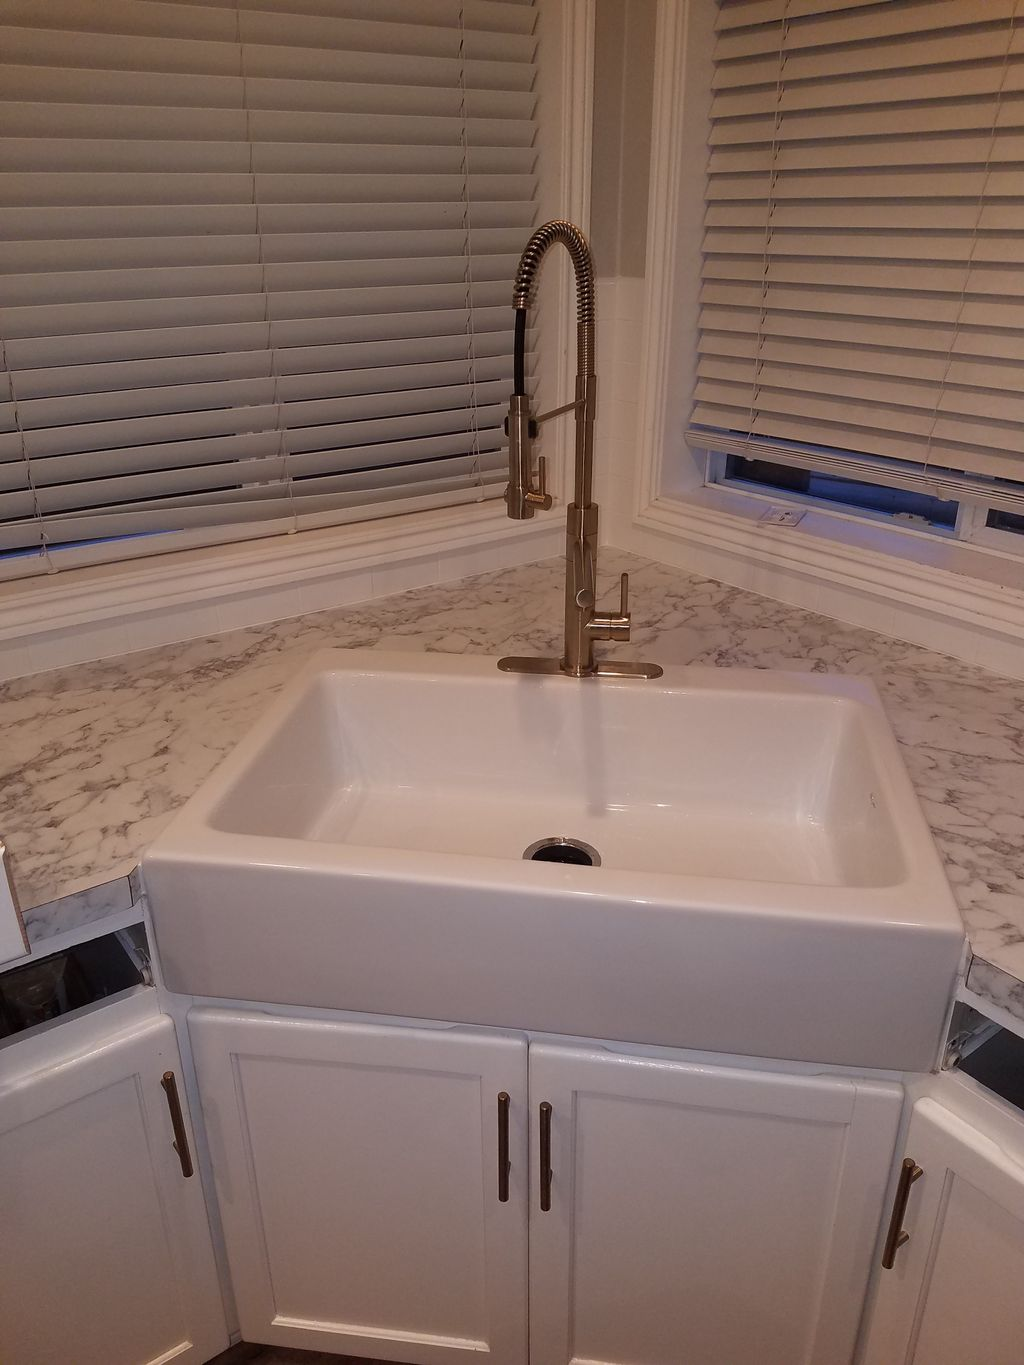 7 Sink and faucet installs